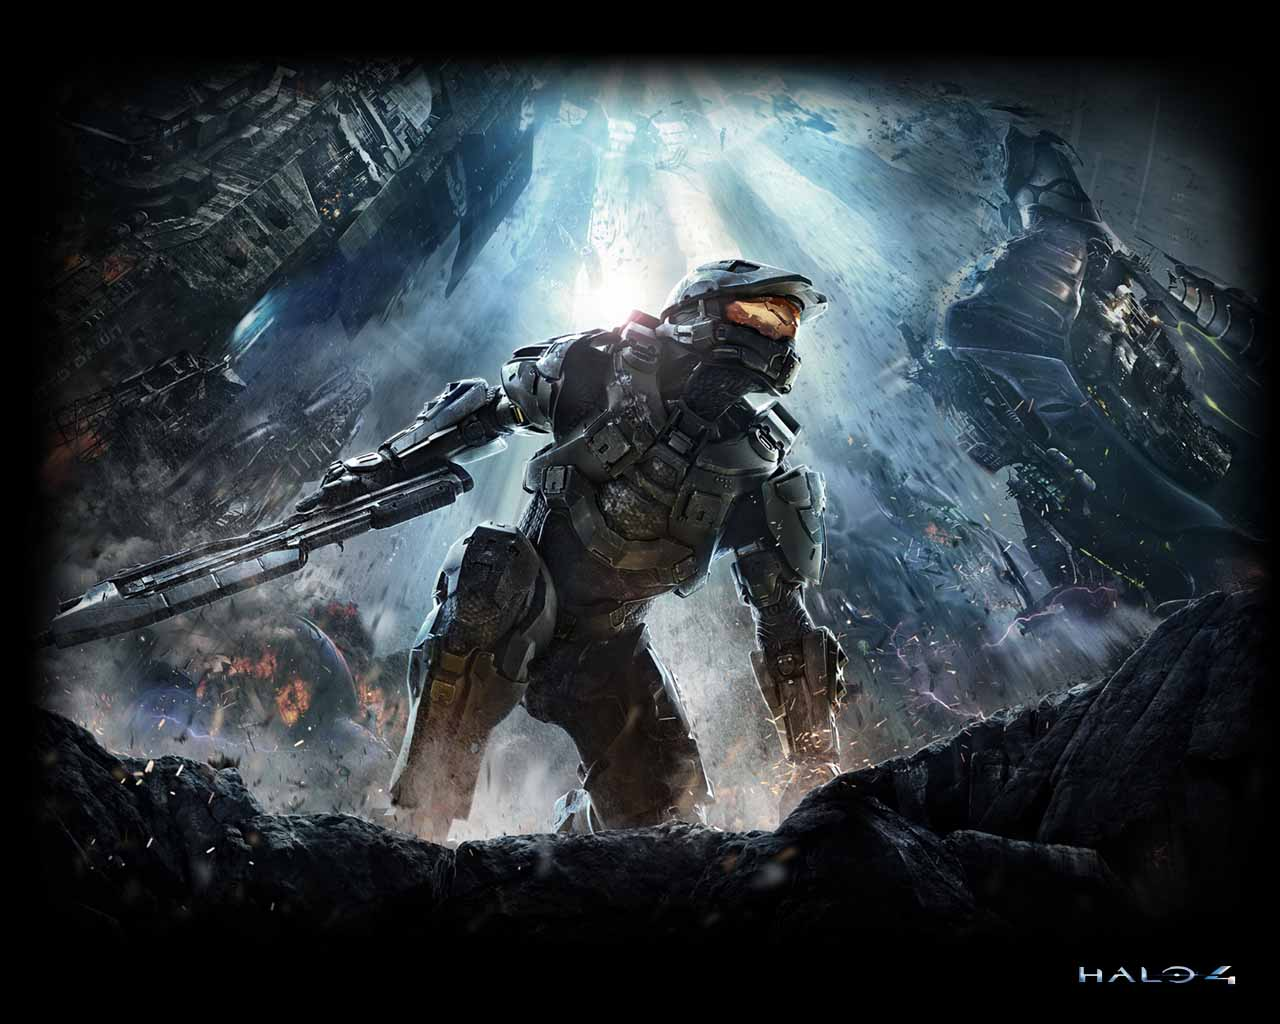 Halo 4 Wallpaper Download Wallpaper